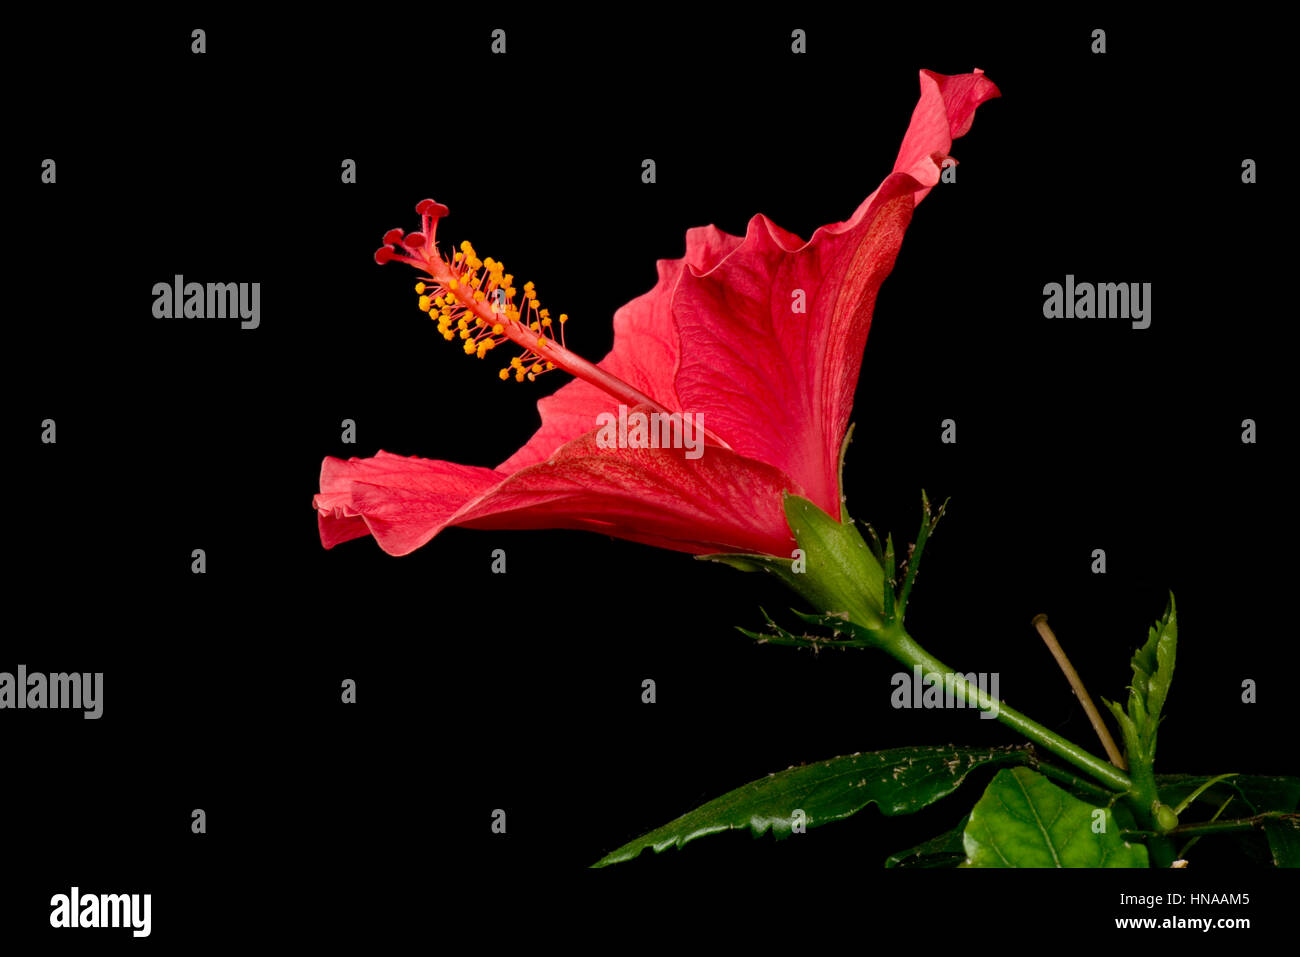 Flower bud of red Hibiscus rosa-sinensis sequence opening to reveal anthers, stigma, style and other reproductive - Stock Image